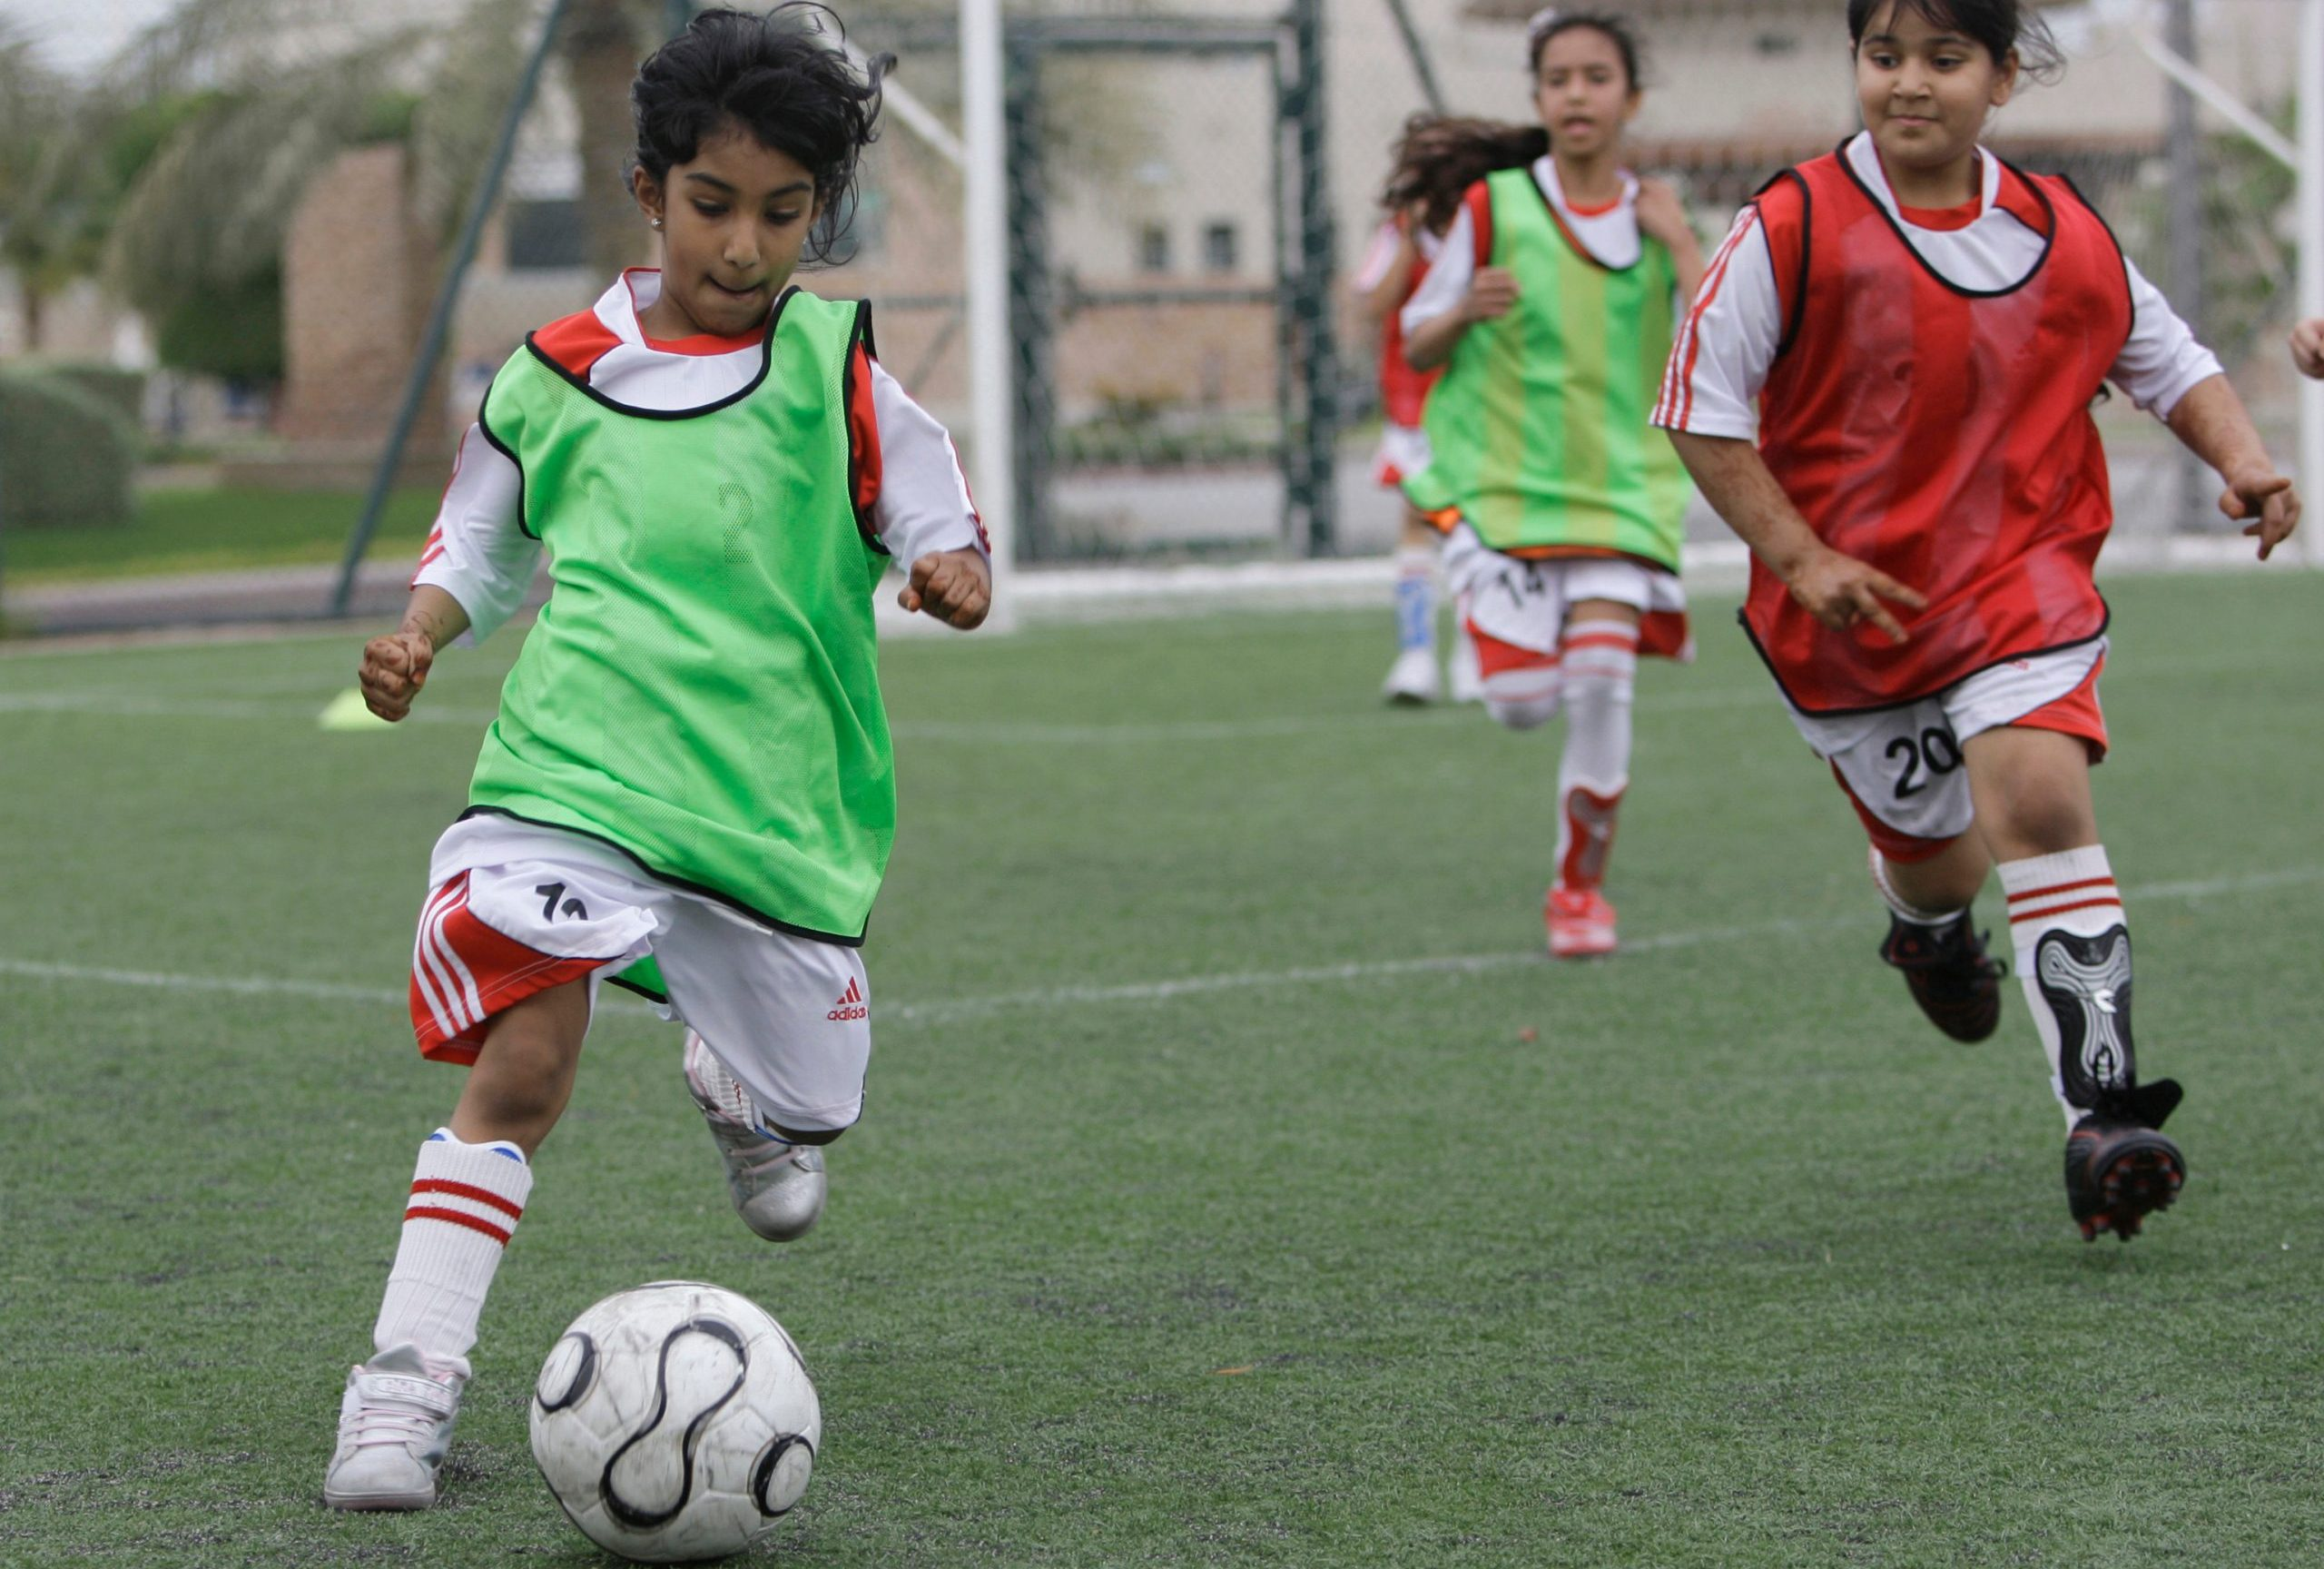 More girls participating in football since the pandemic began